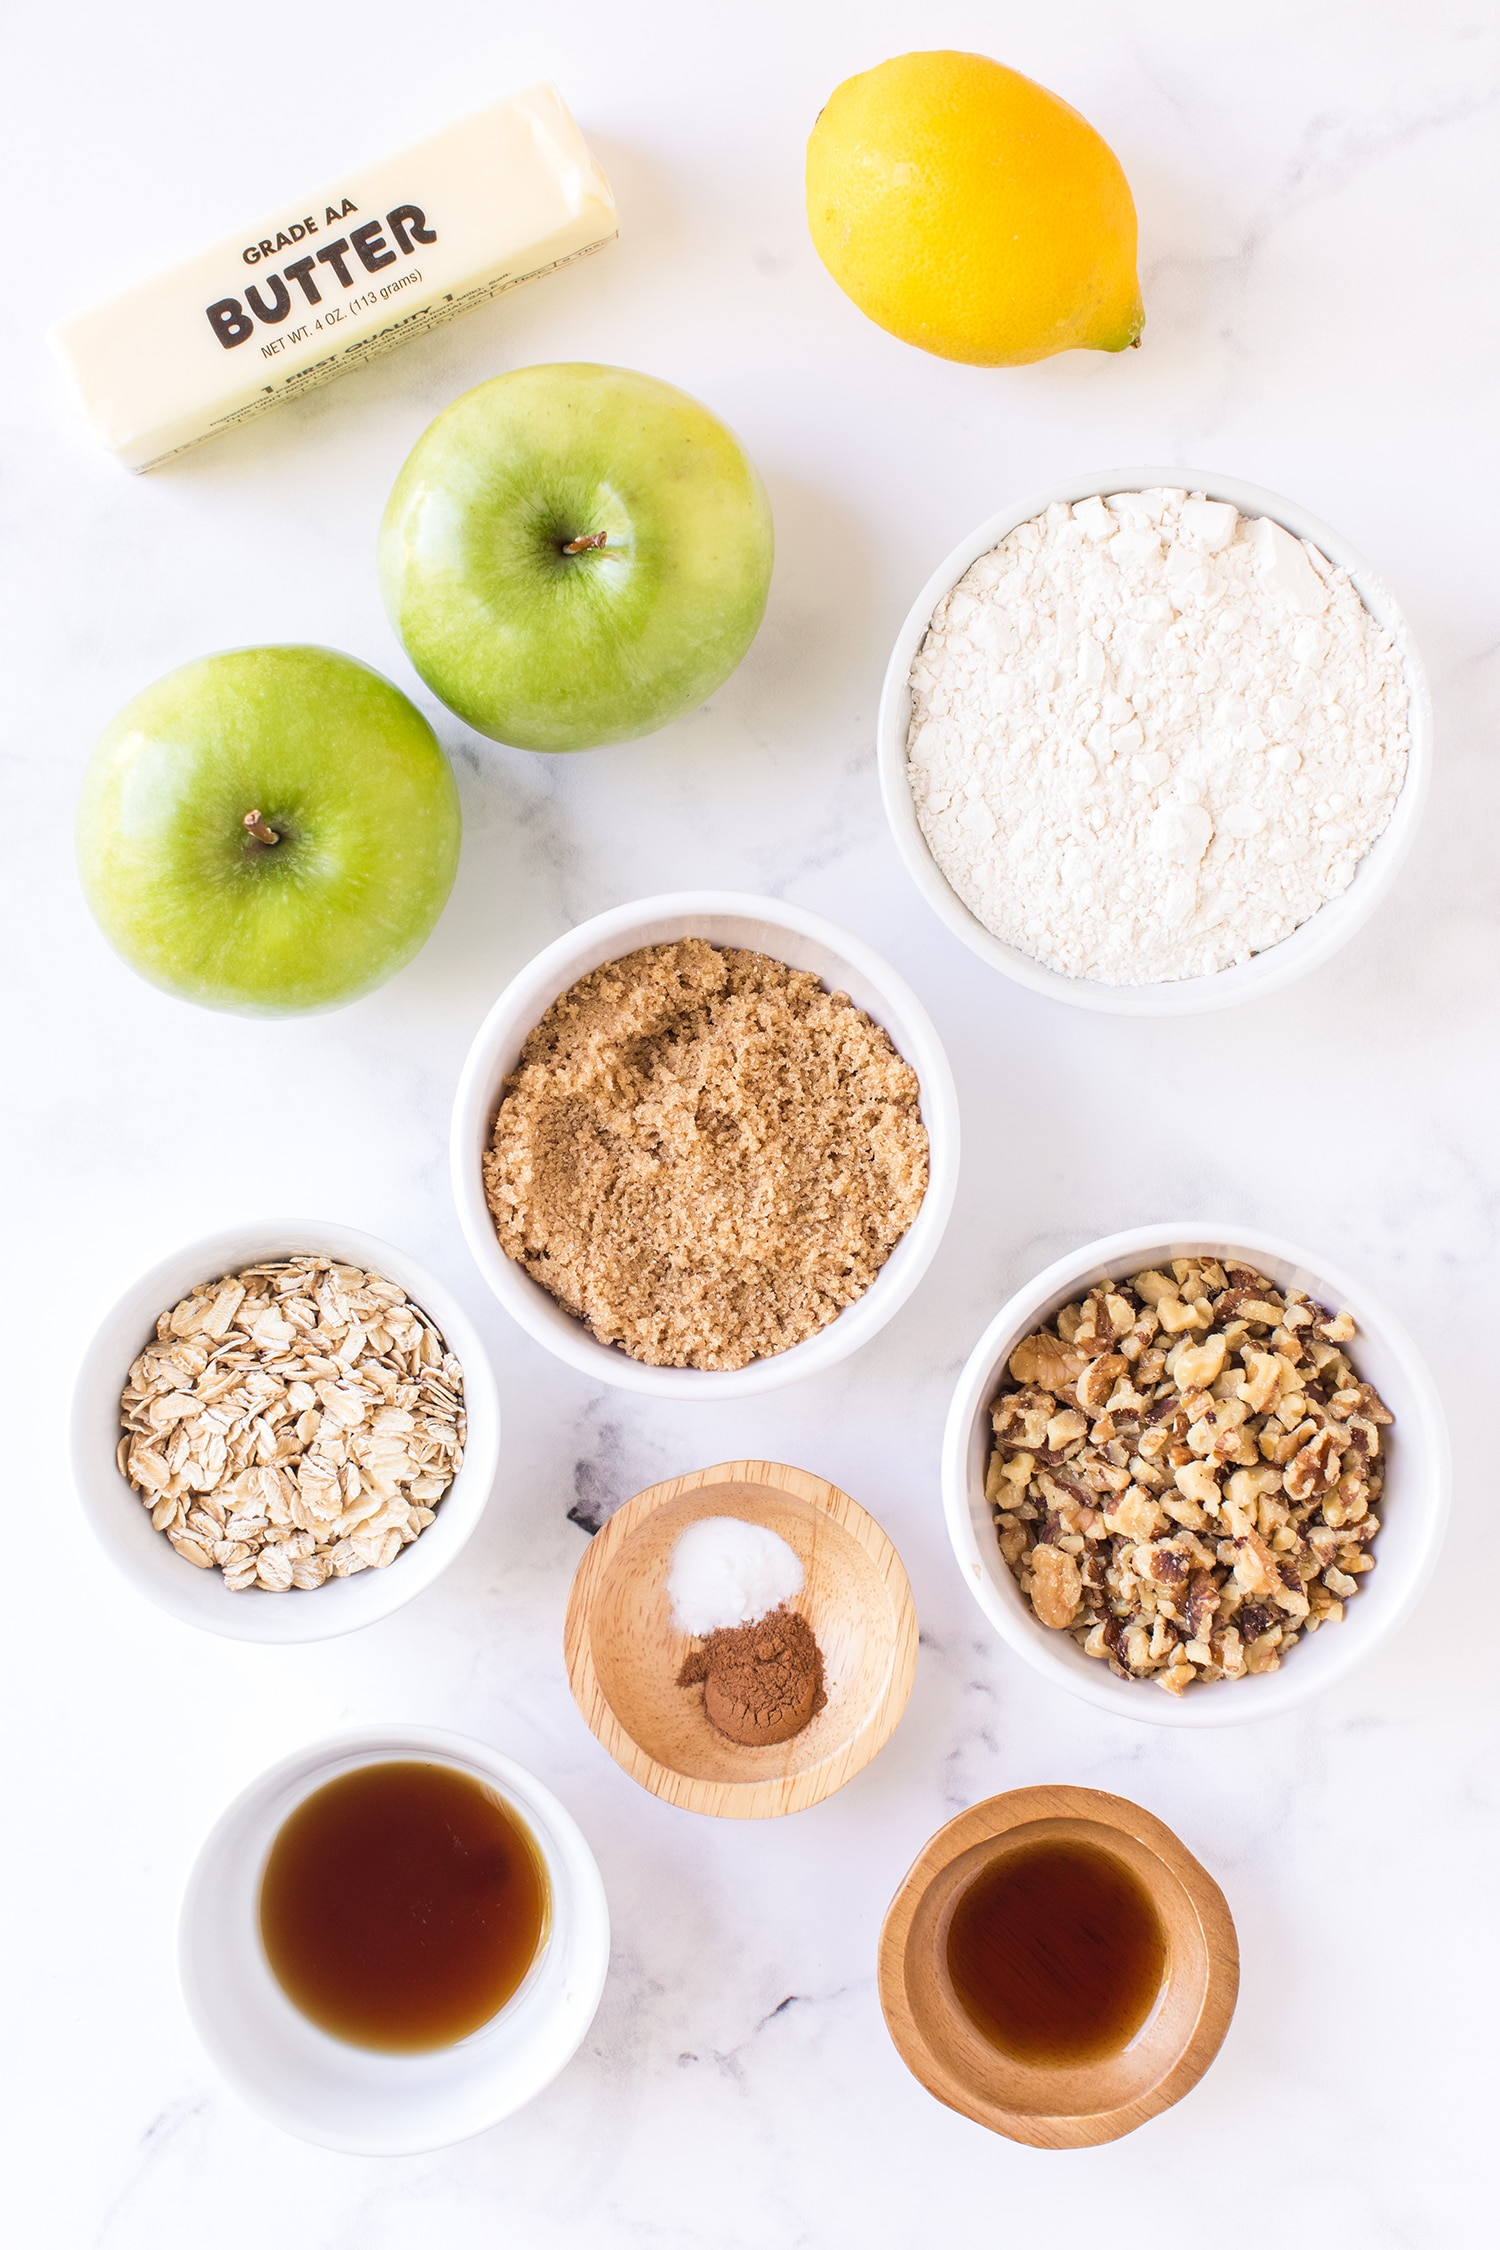 Ingredients for Apple Pie Bars in small bowls on white marble background